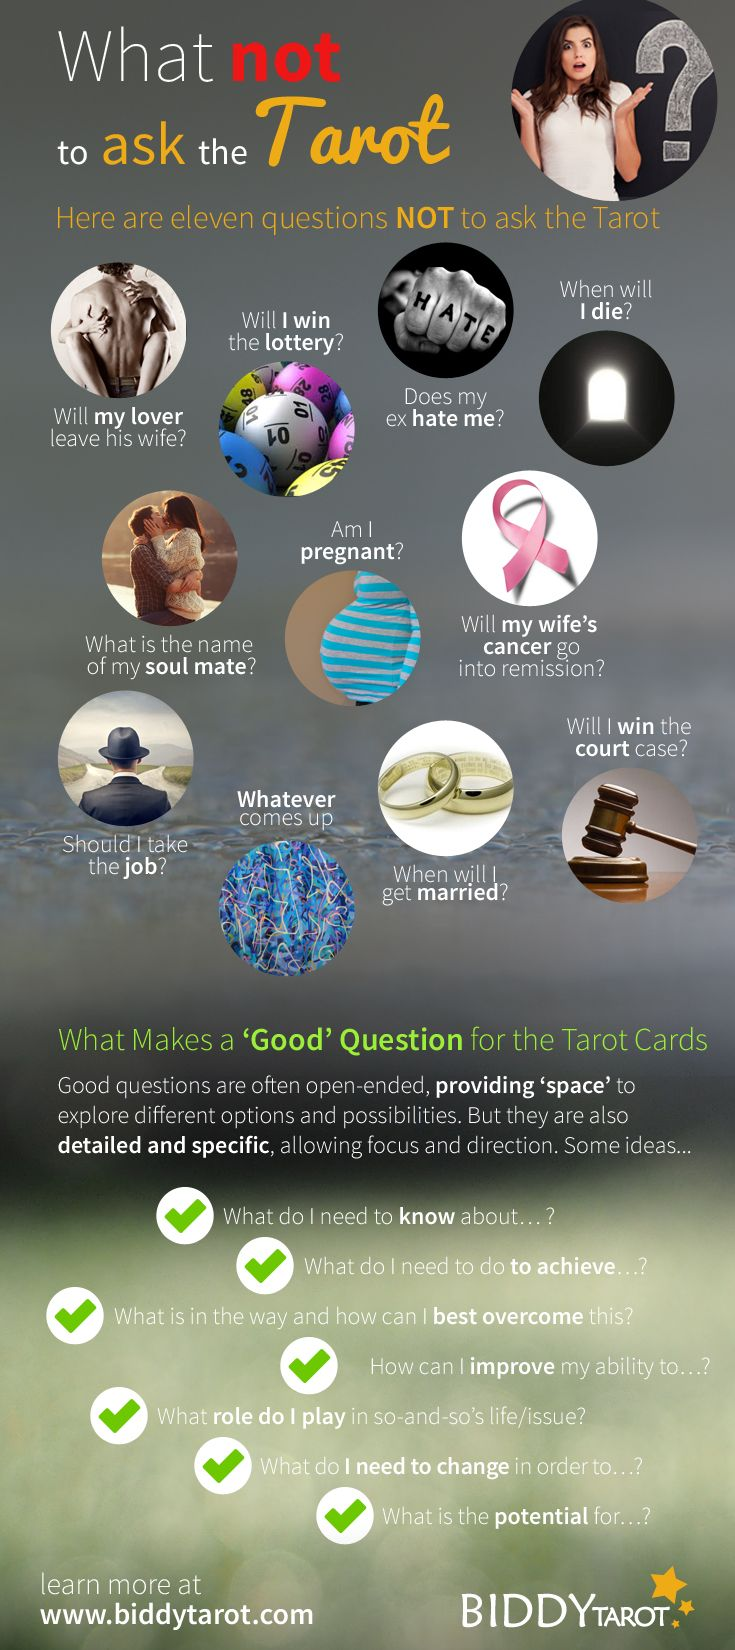 The #Tarot can answer everything, right? You just think of your problem, lay out the cards, and shazzam, you have your answer, yeah?  Wrong!  While the Tarot cards are certainly there to guide you and to provide insight into your troubles and concerns, there are just some questions NOT to ask the Tarot. #tarottips